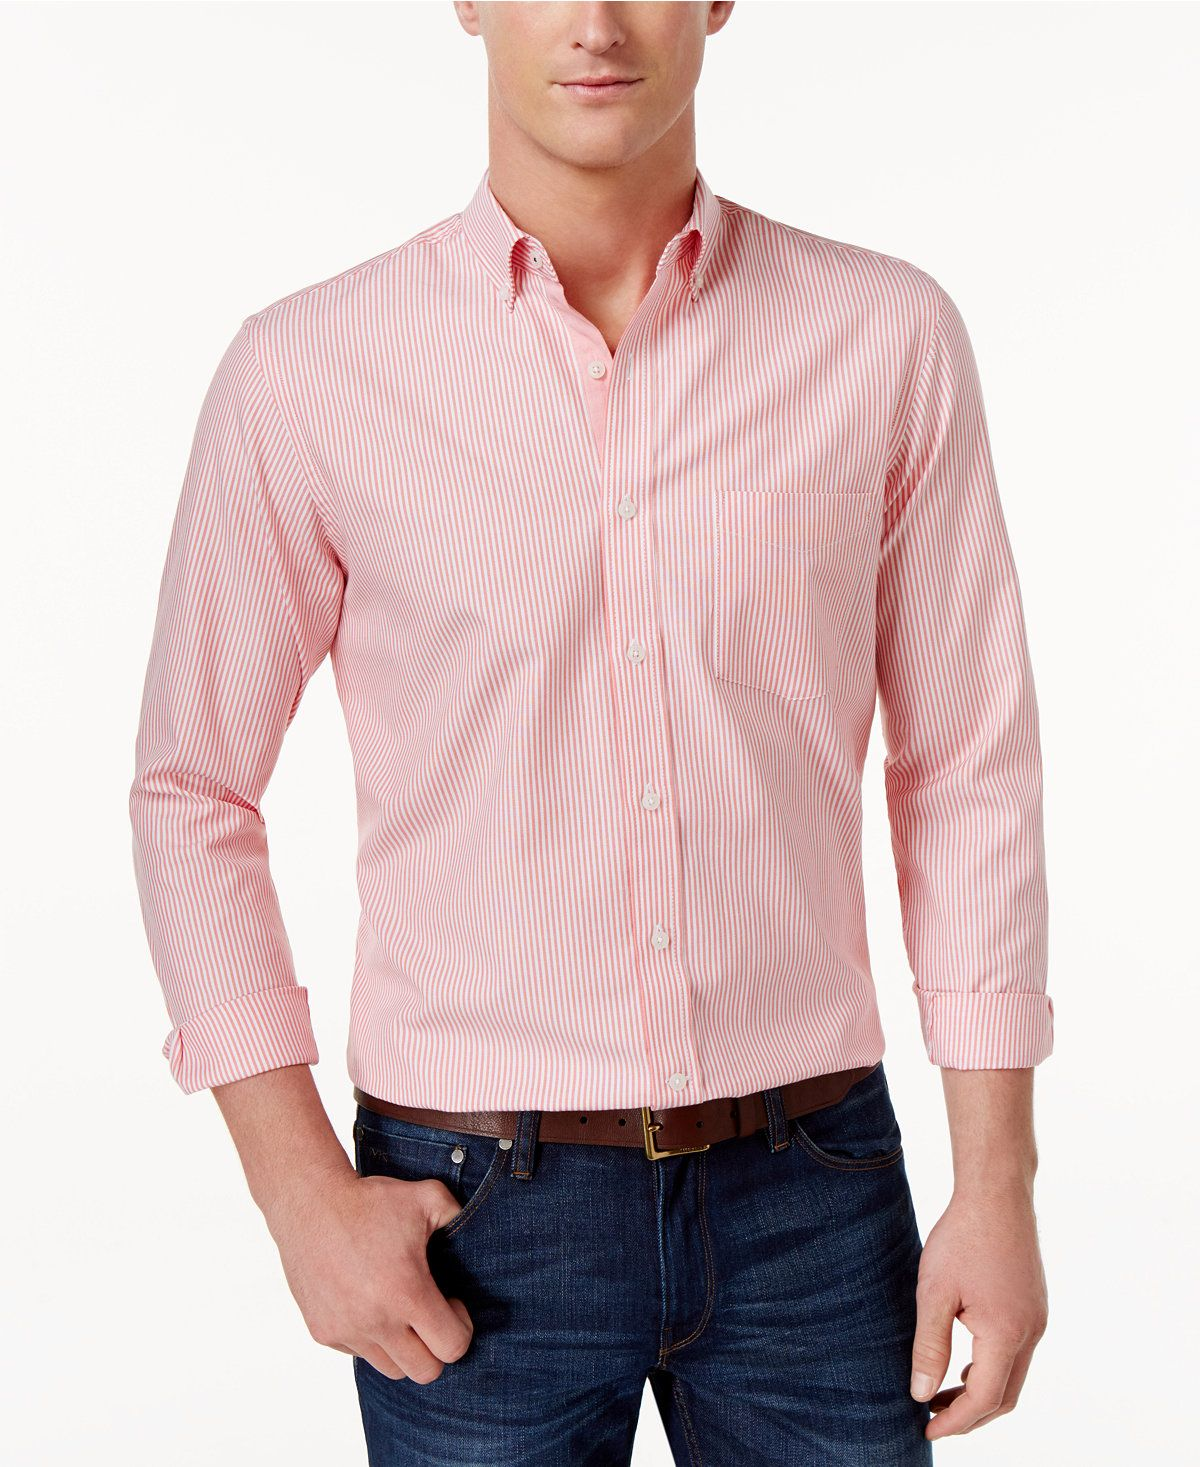 87e555513ed Club Room Men's Striped Button-Down Shirt, Only at Macy's - Casual  Button-Down Shirts - Men - Macy's